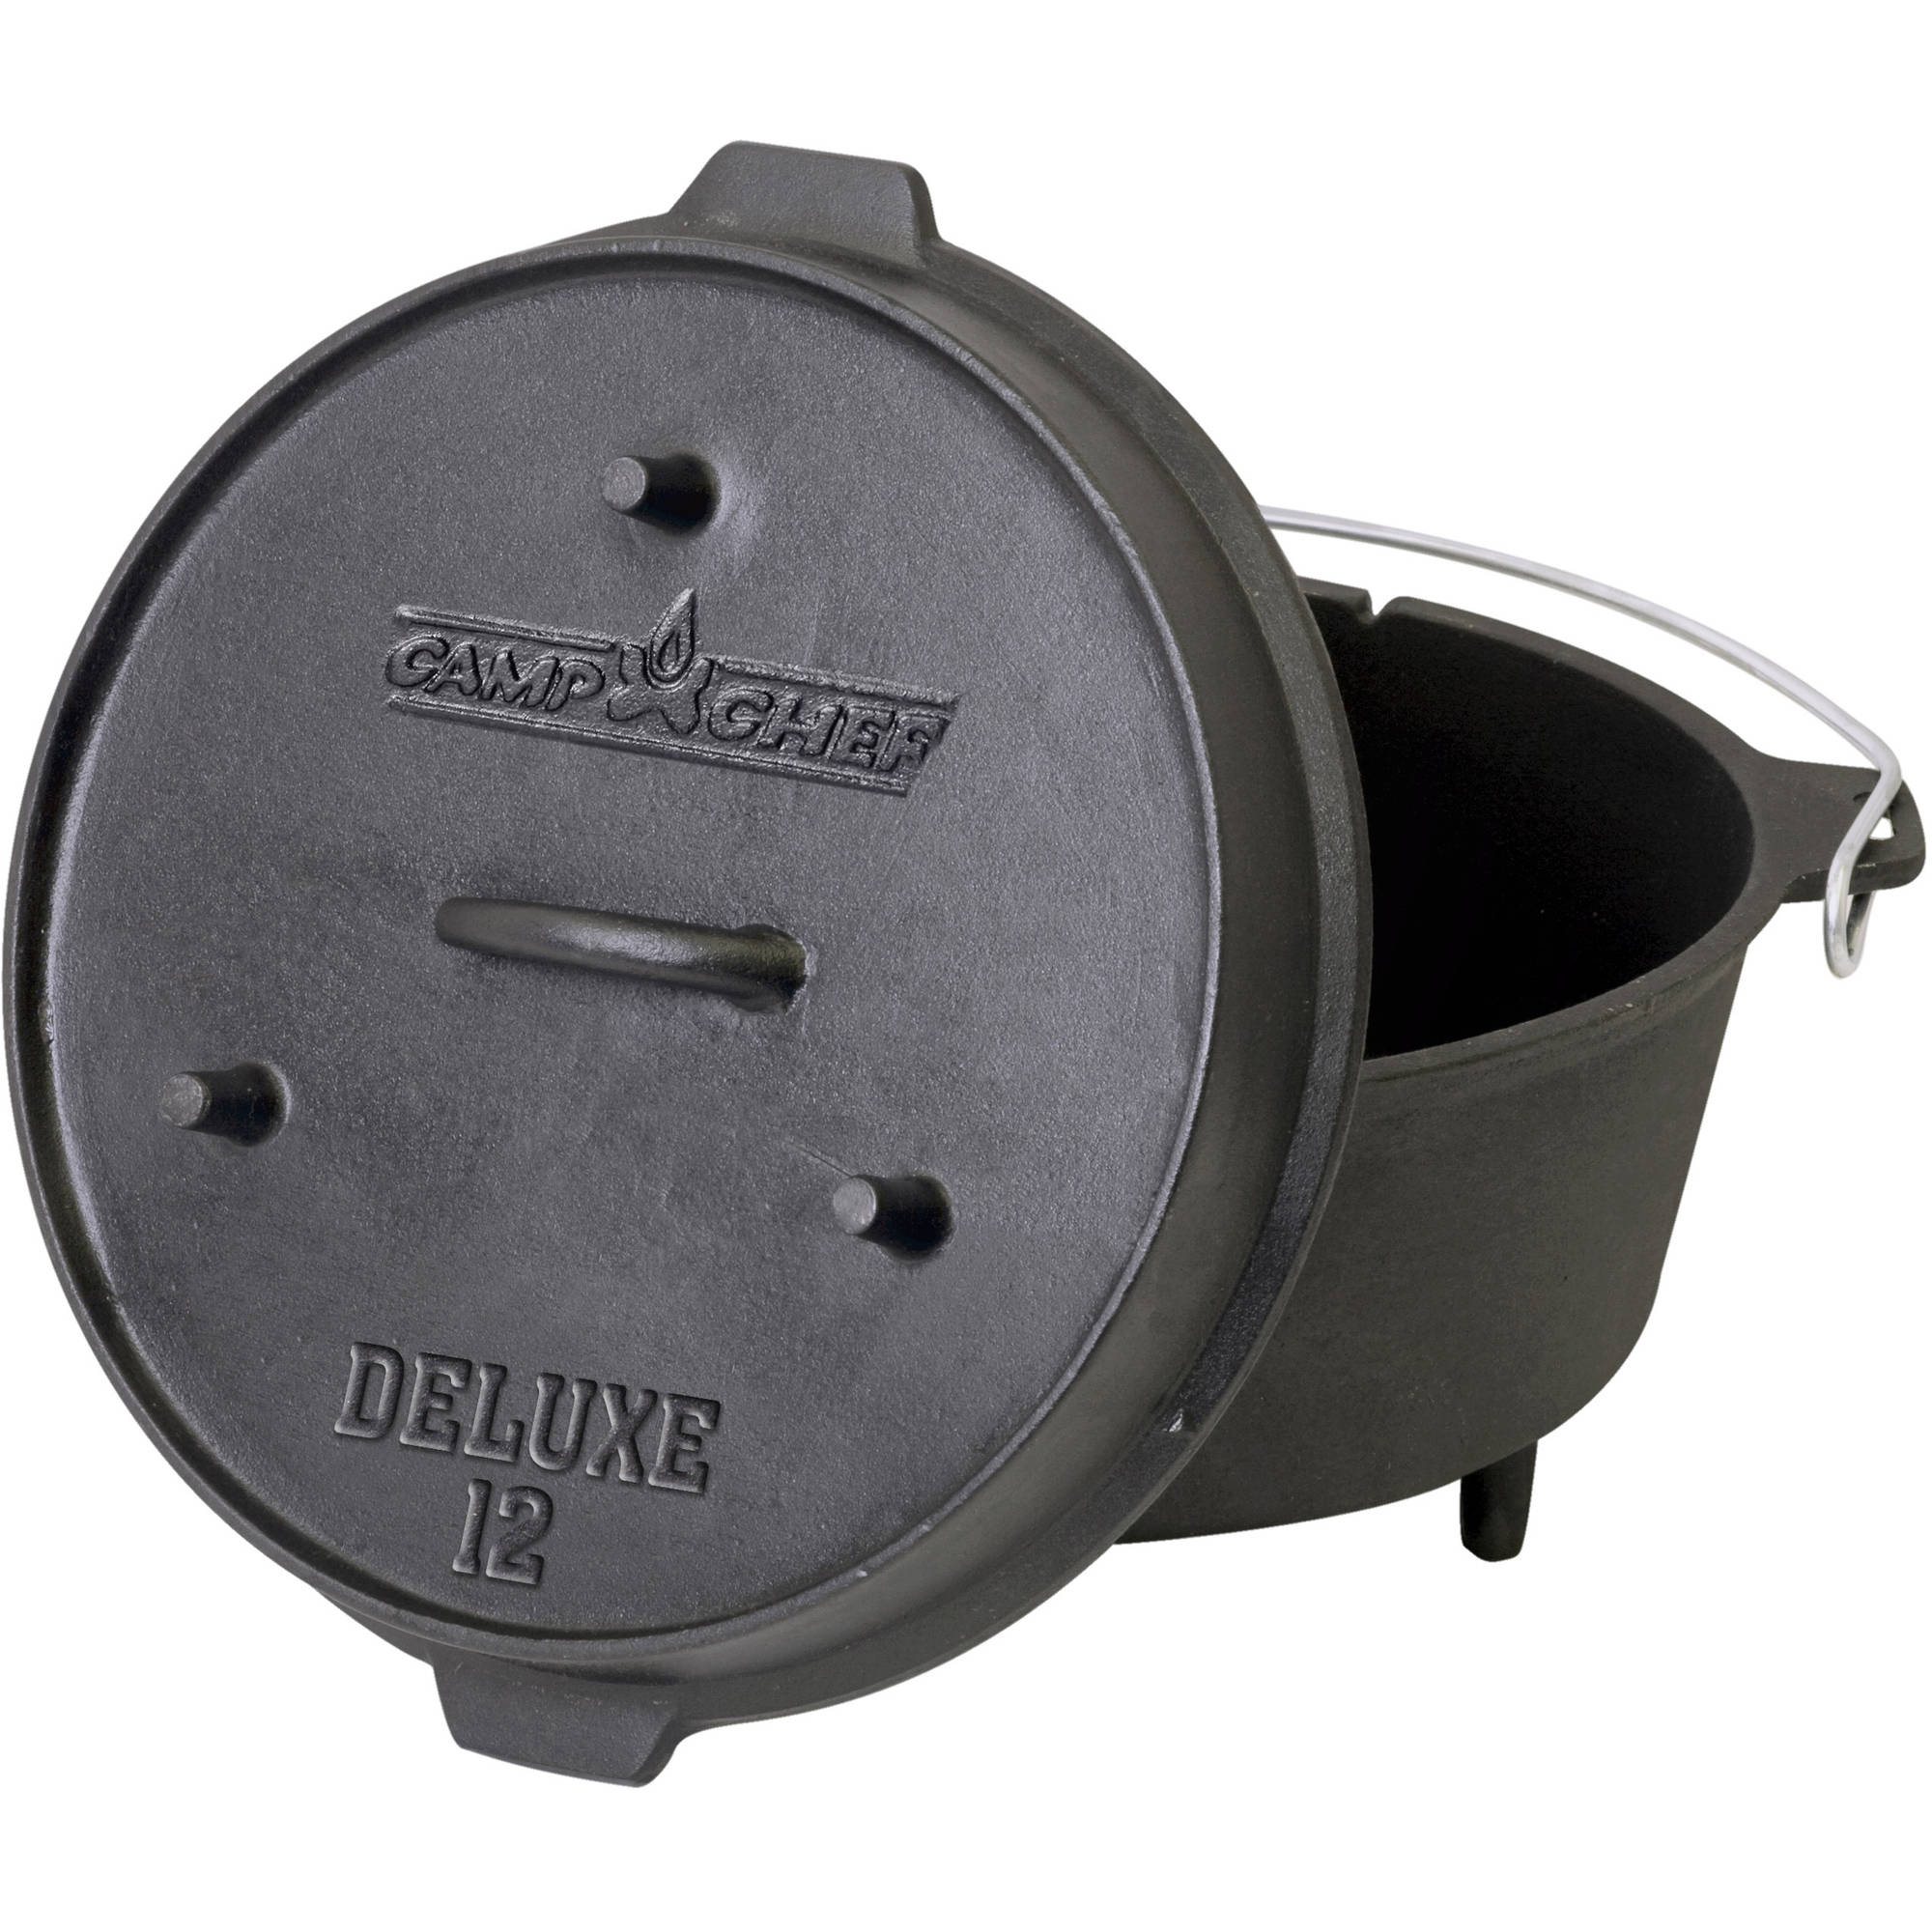 Camp Chef Pre-Seasoned 9-1/3-Quart Cast Iron Dutch Oven